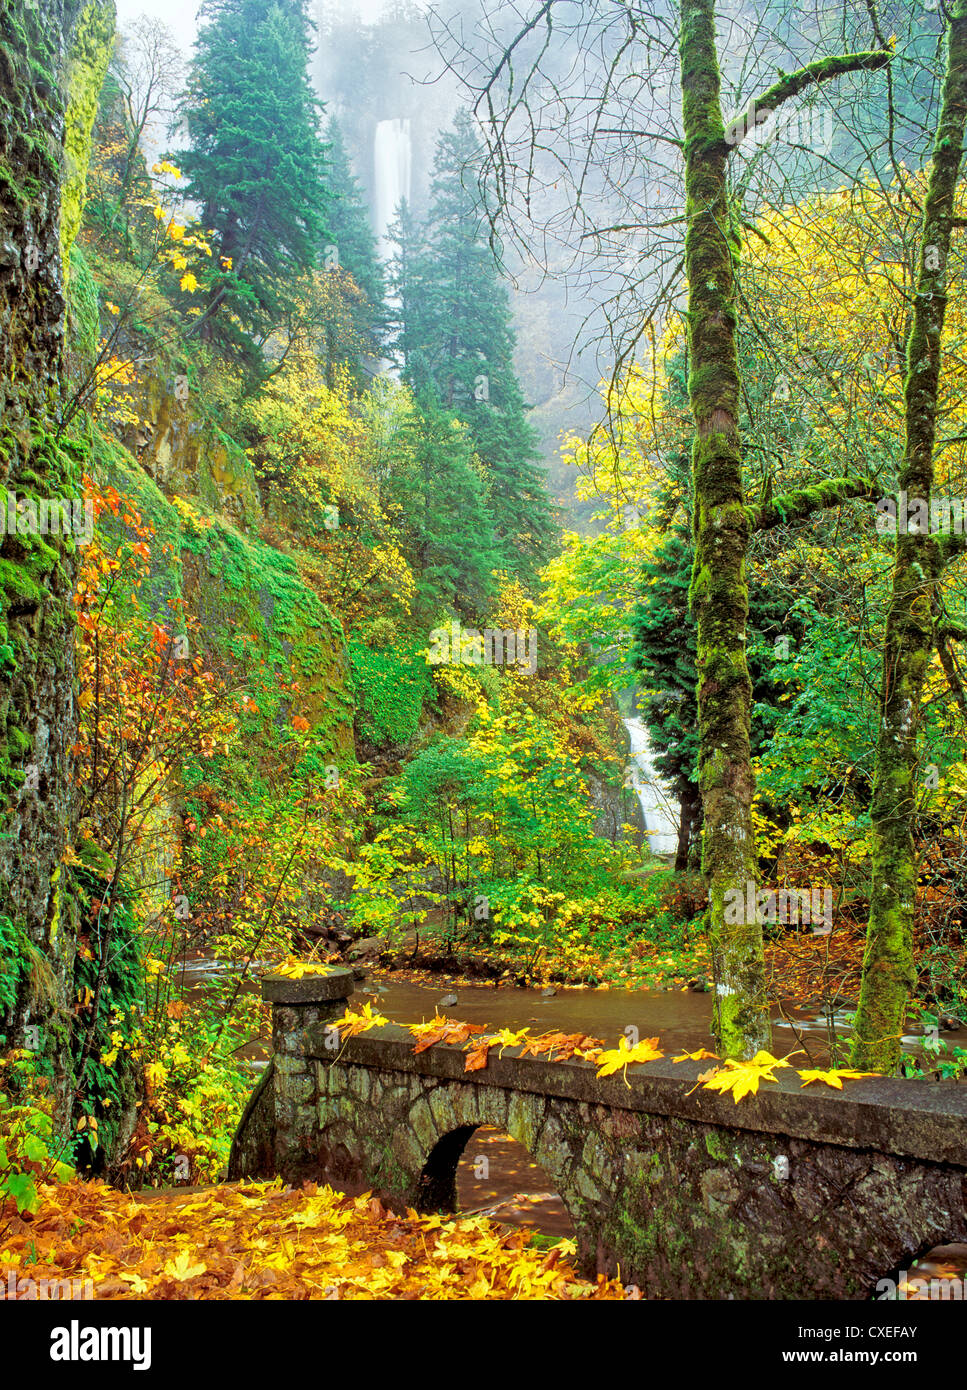 Multnomah Falls with fall color and stone fence. Columbia River Gorge National Scenic Area, Oregon - Stock Image